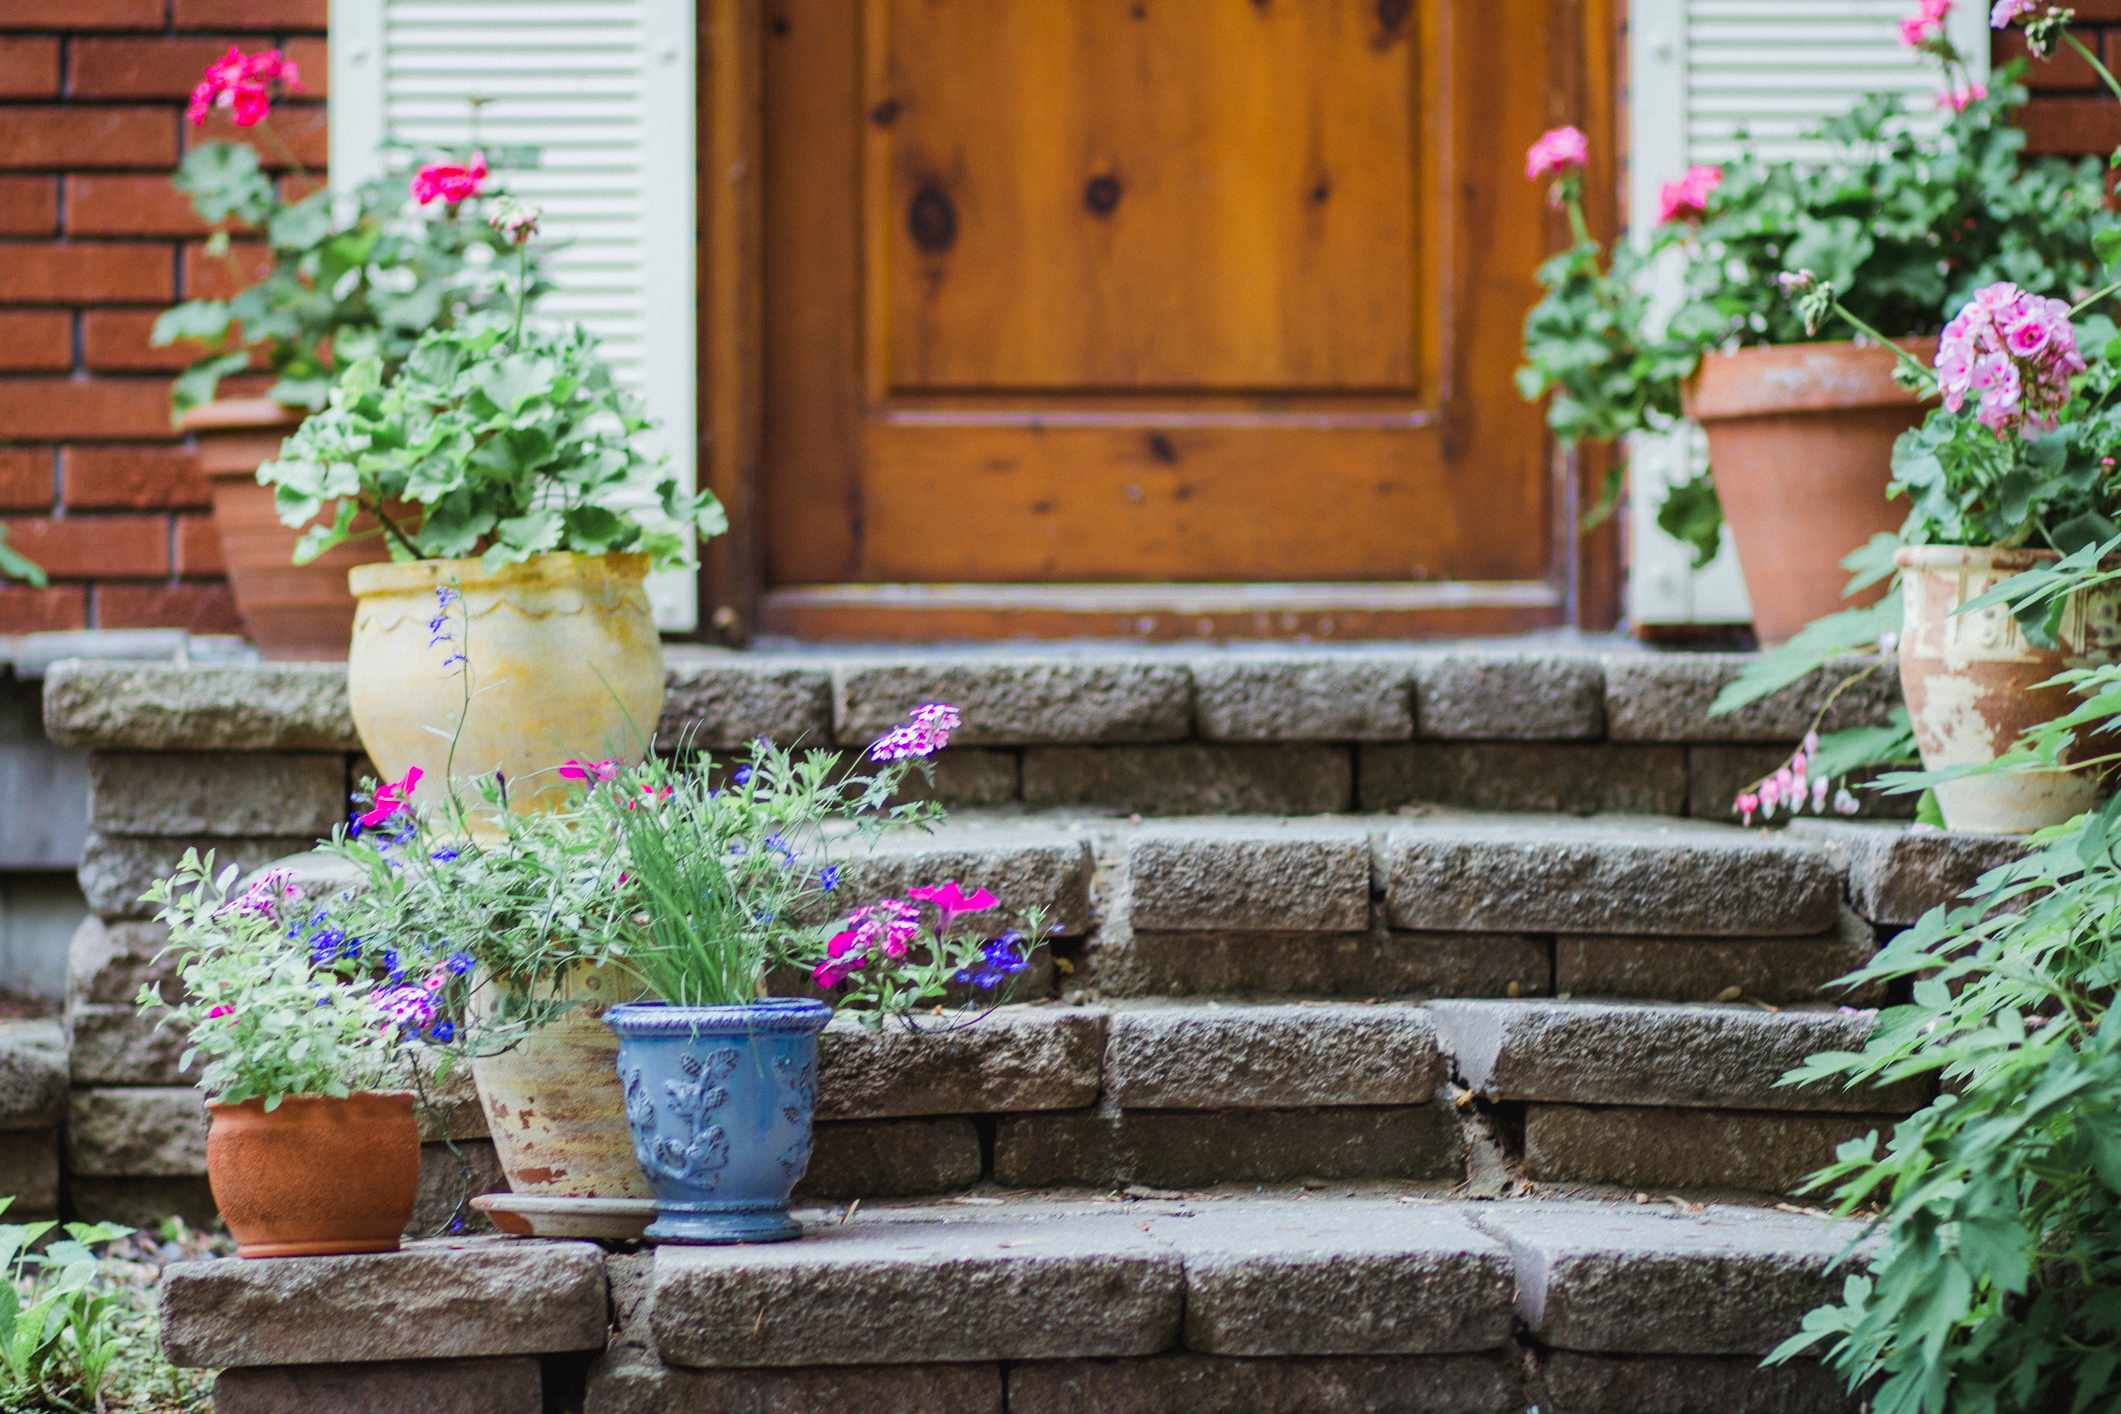 Potted plants with flowers on the steps of a house porch